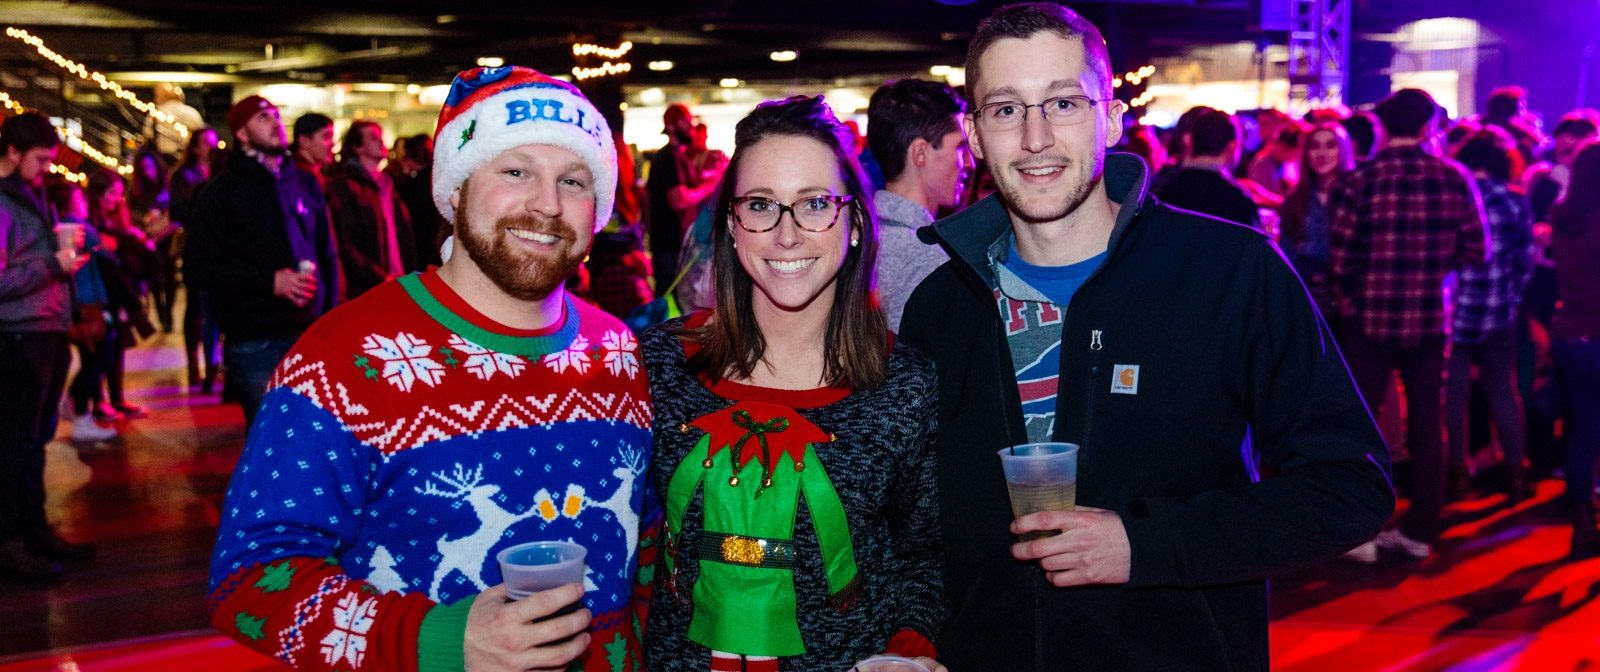 Pity, that Ugly christmas sweater parties